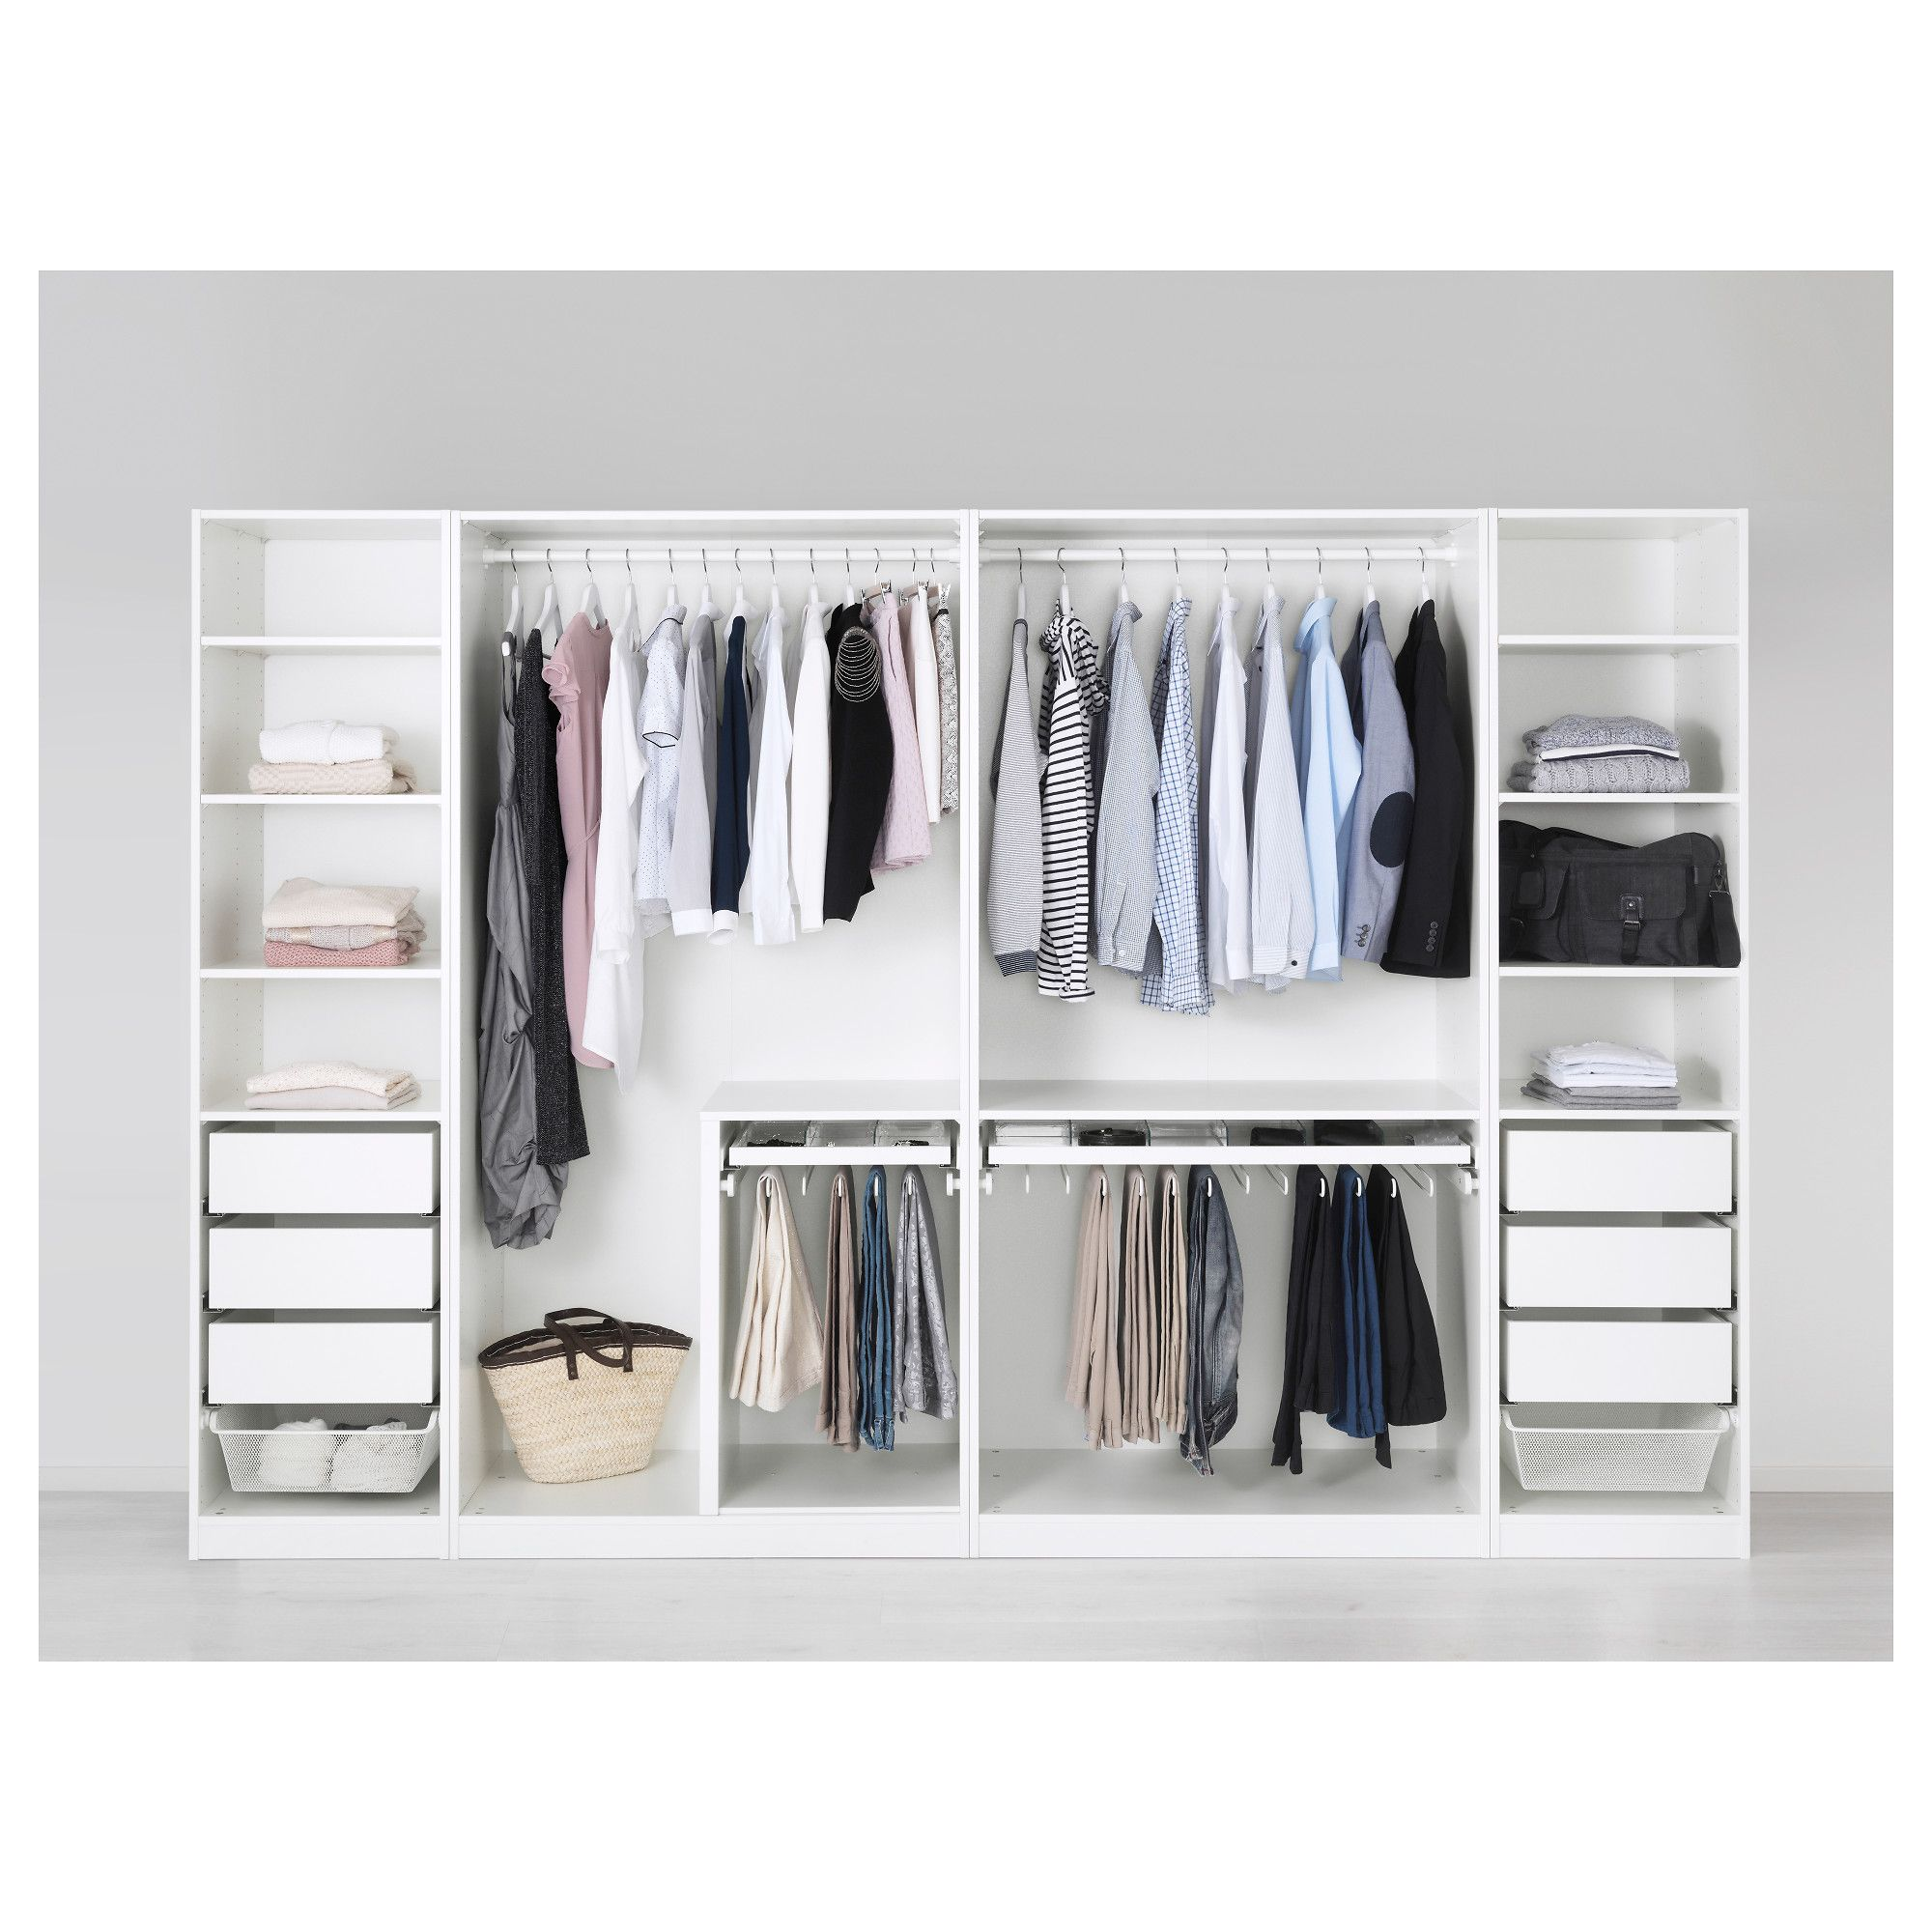 wardrobe wardrobes accessories search ikea pin pinterest pax google